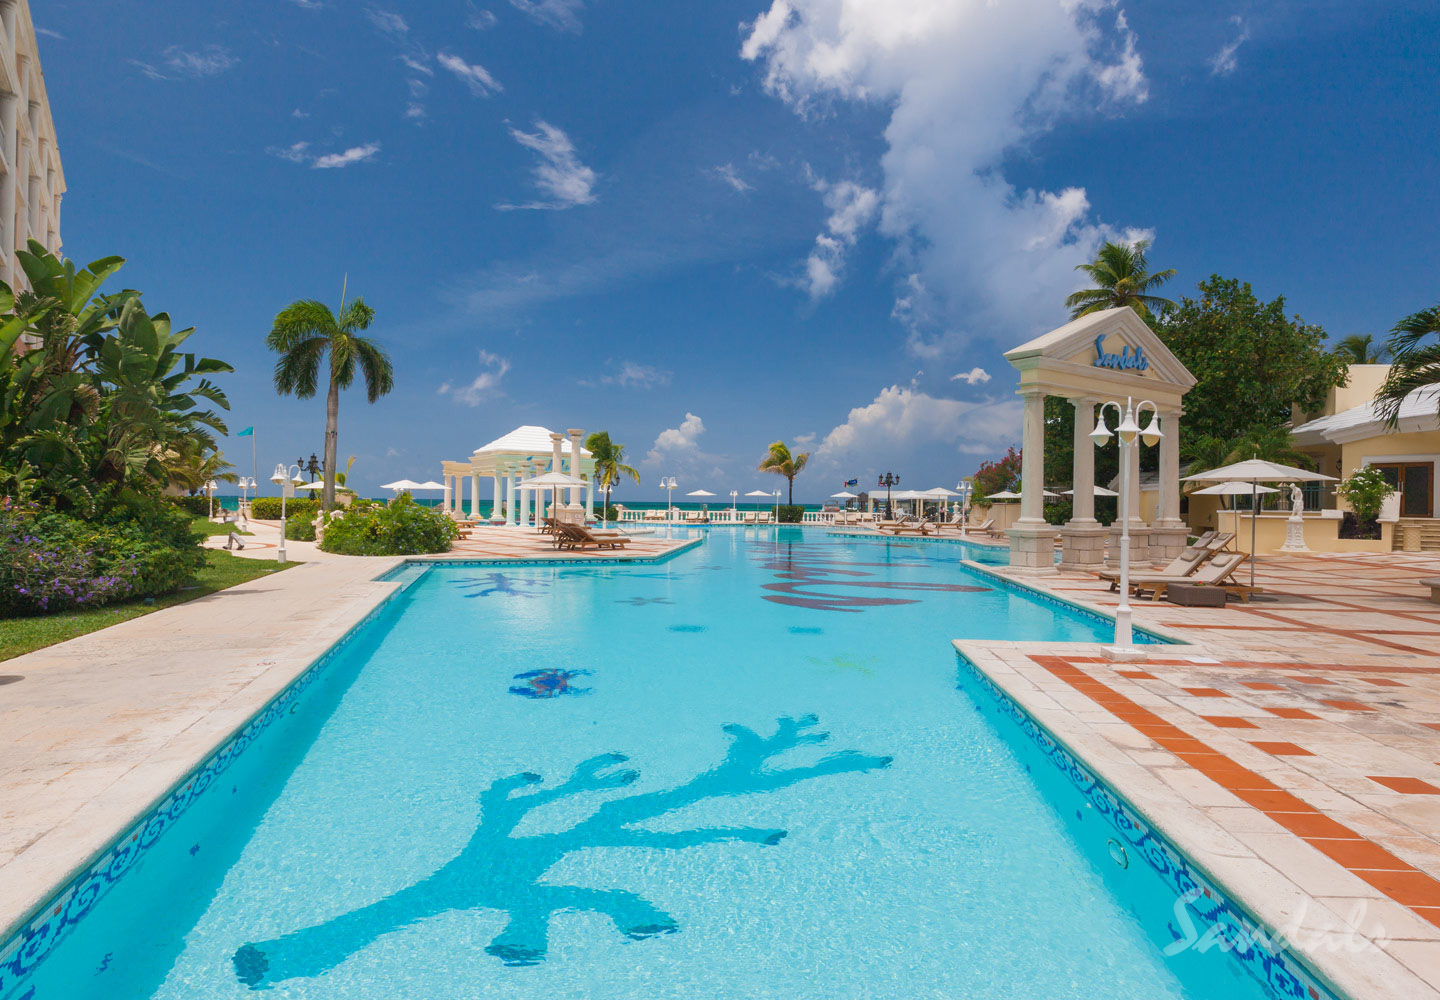 Travel Agency All-Inclusive Resort Sandals Royal Bahamian 097